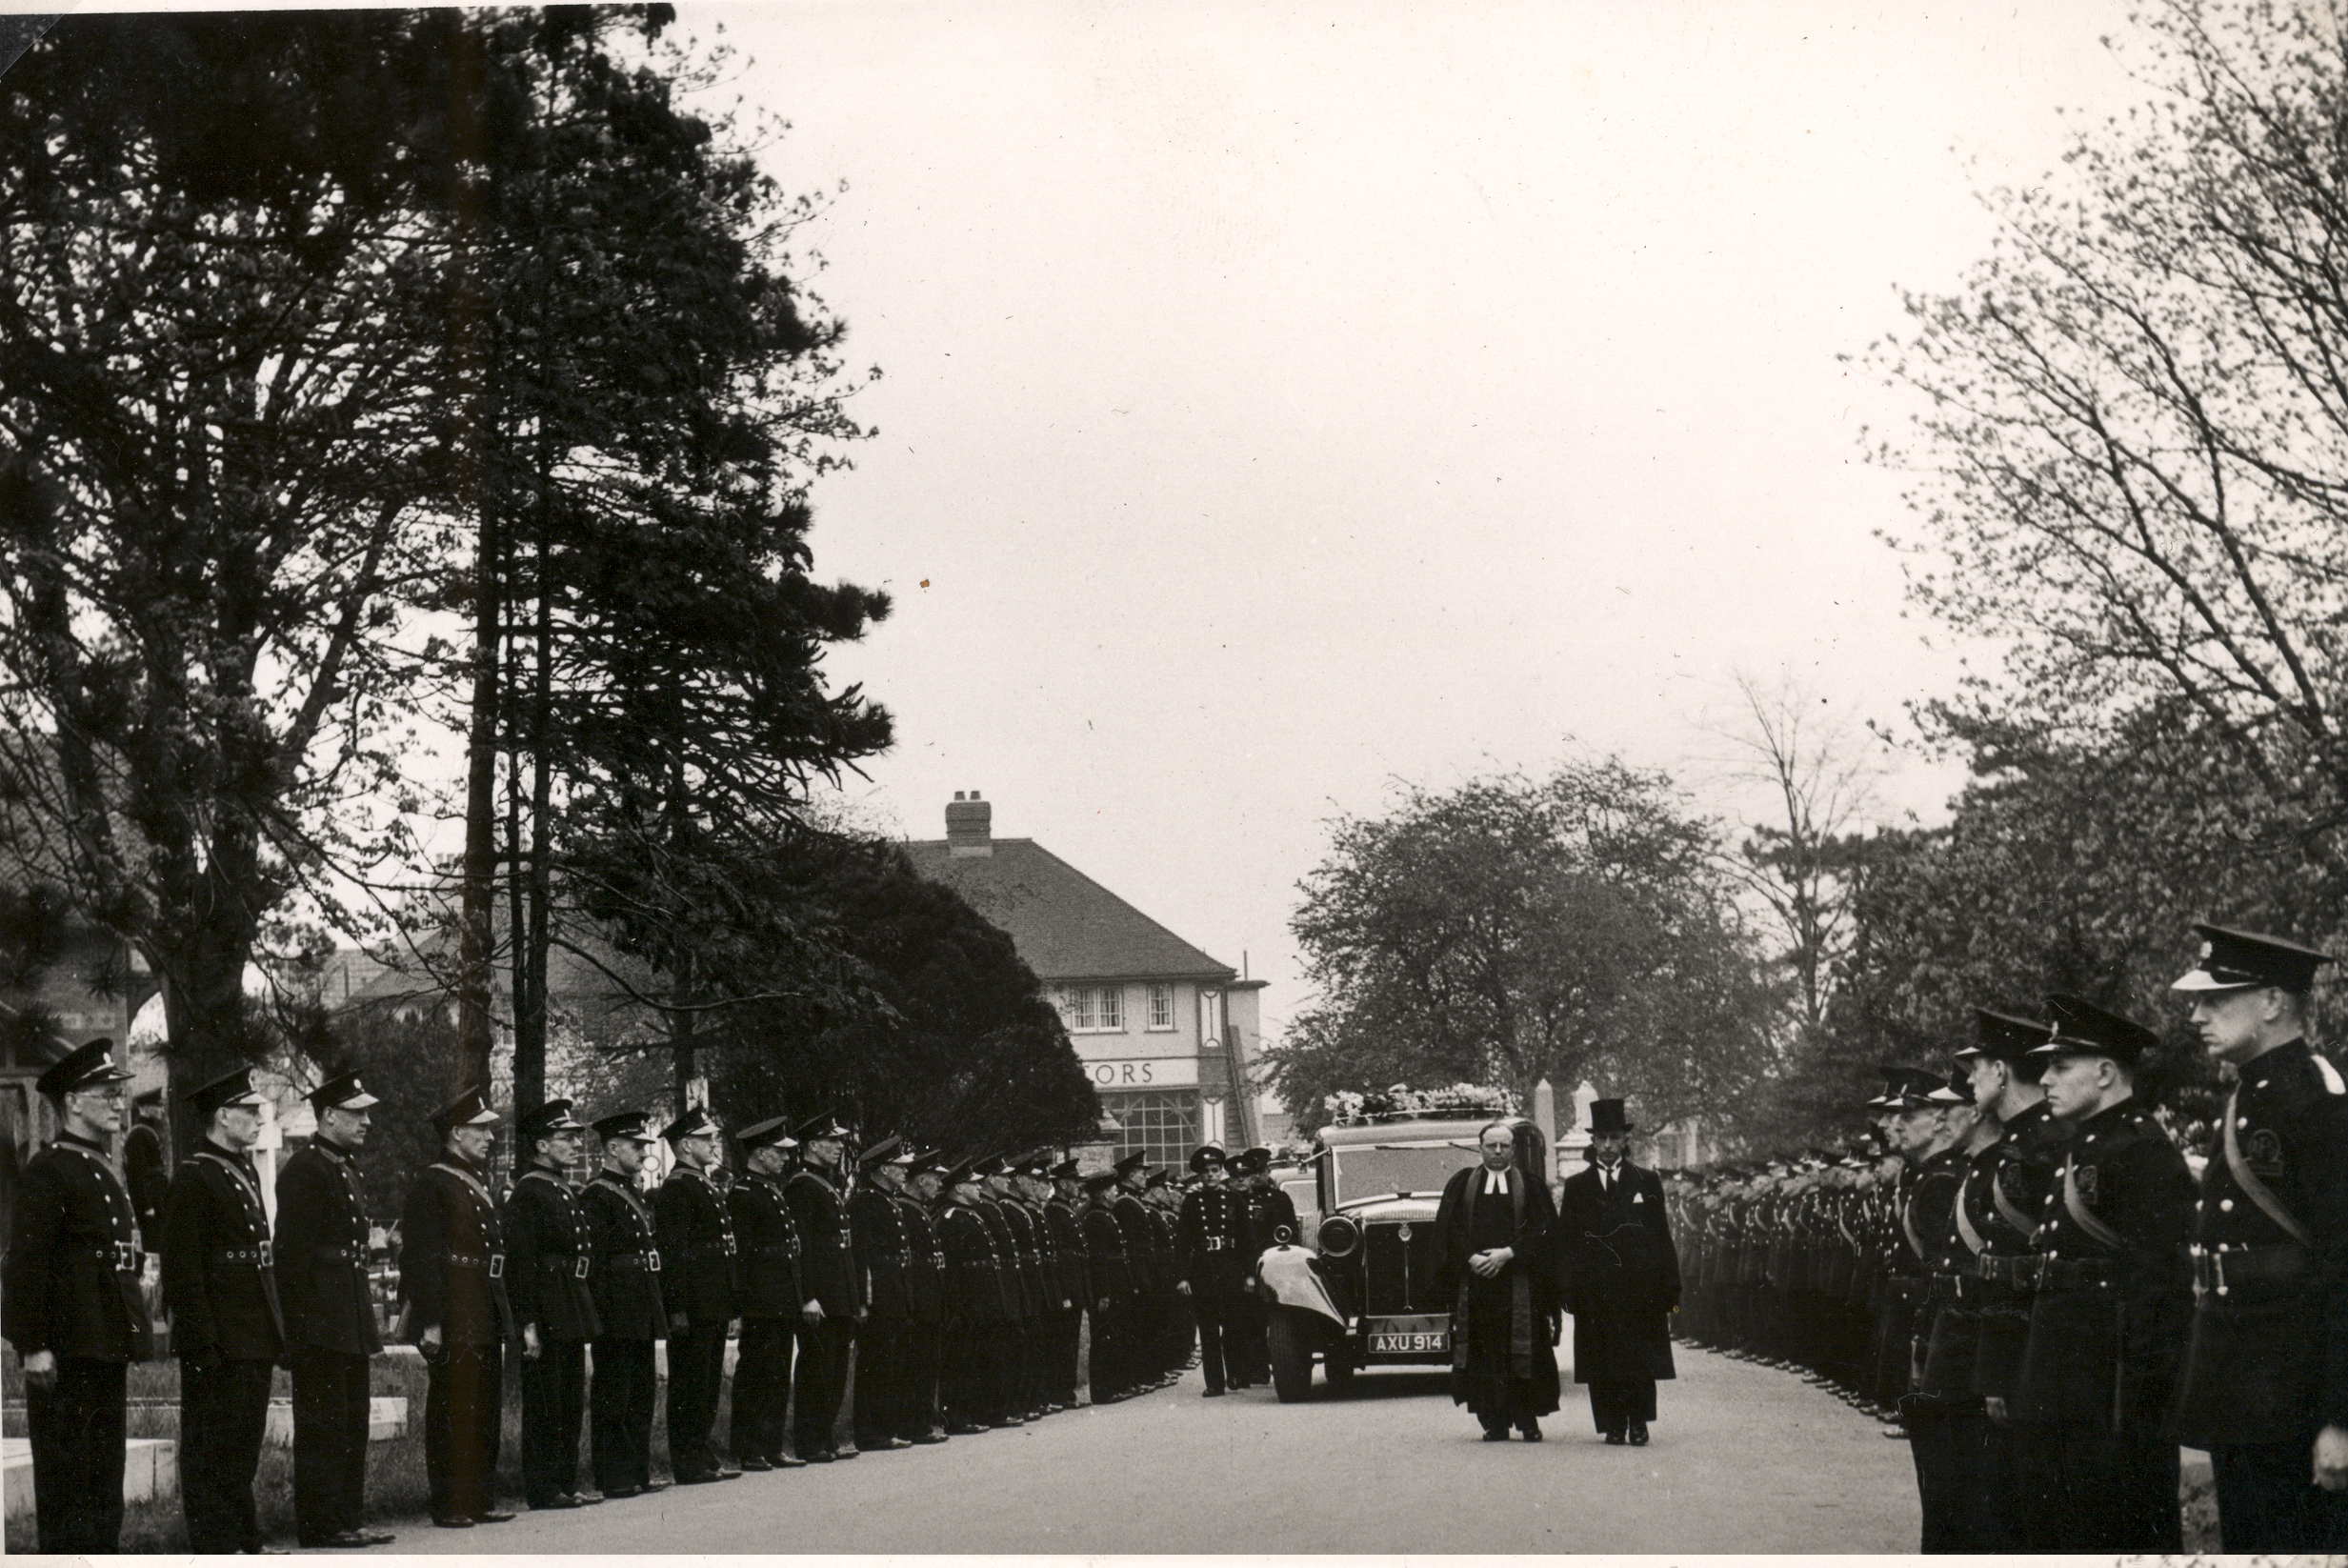 Funeral cortege at cemetery